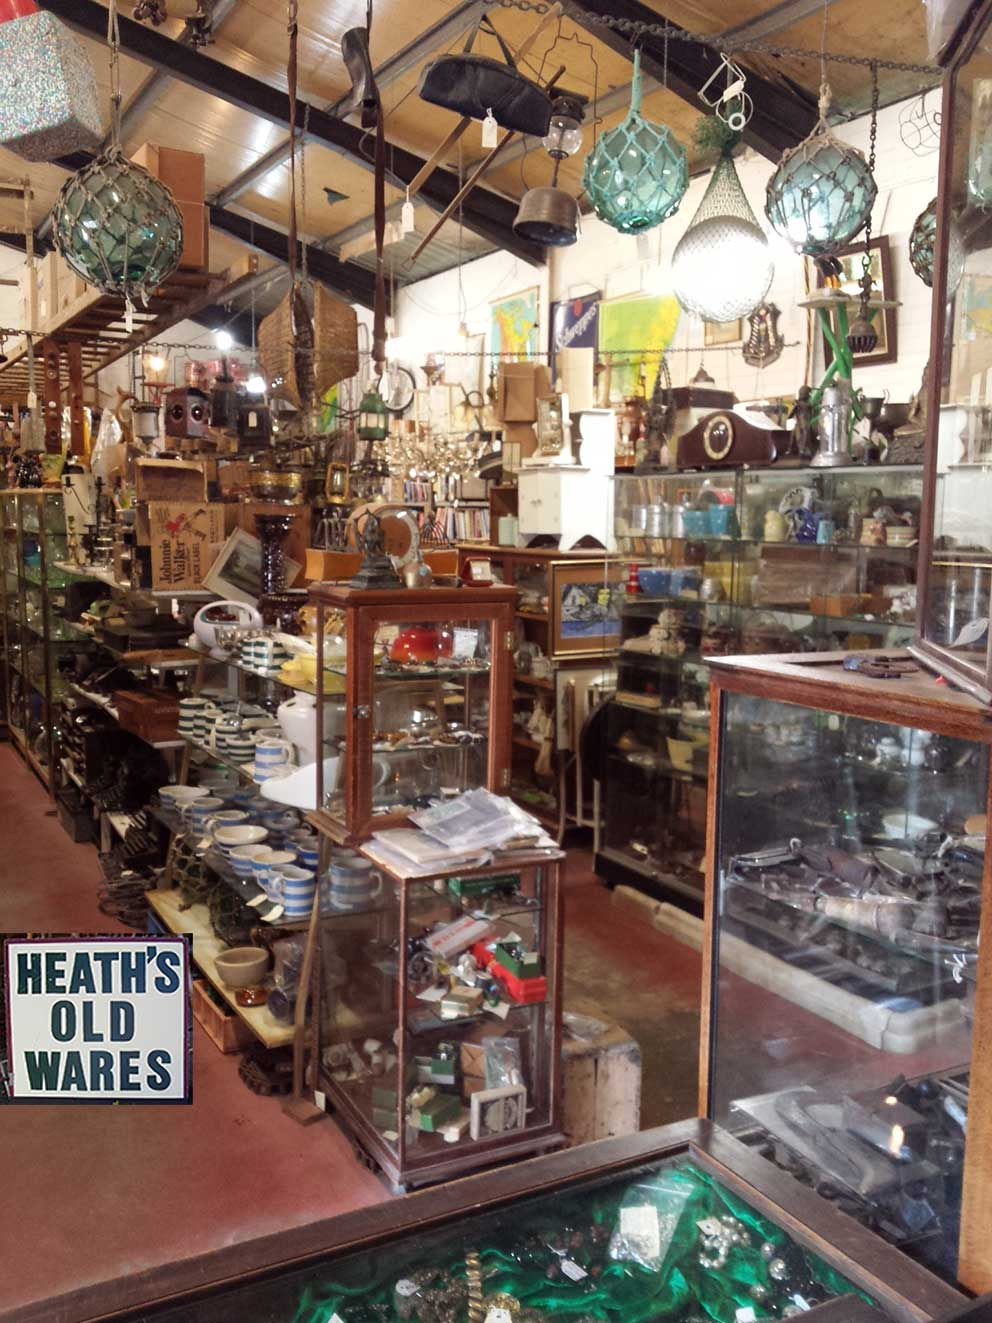 vintage and antique treasures for sale at  Heaths Old Wares Collectables Industrial Antiques  12 Station Street Bangalow NSW 2479 Open 7 Days 9am - 5pm ph 02 6687 2222